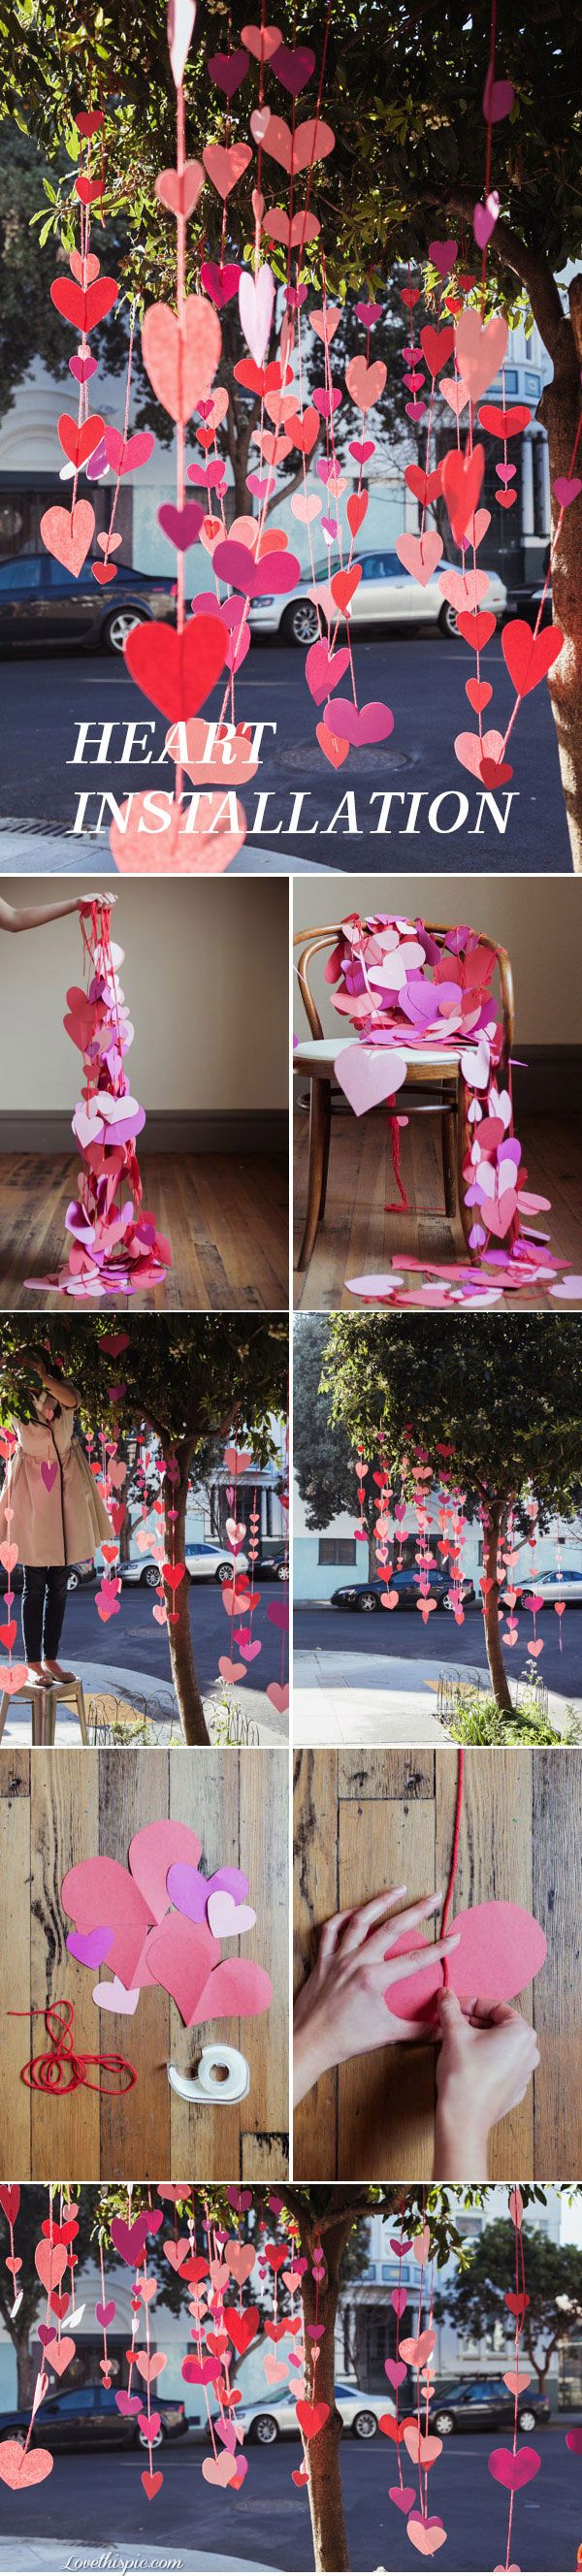 The 22 best images about valentines day on pinterest for B day decoration ideas